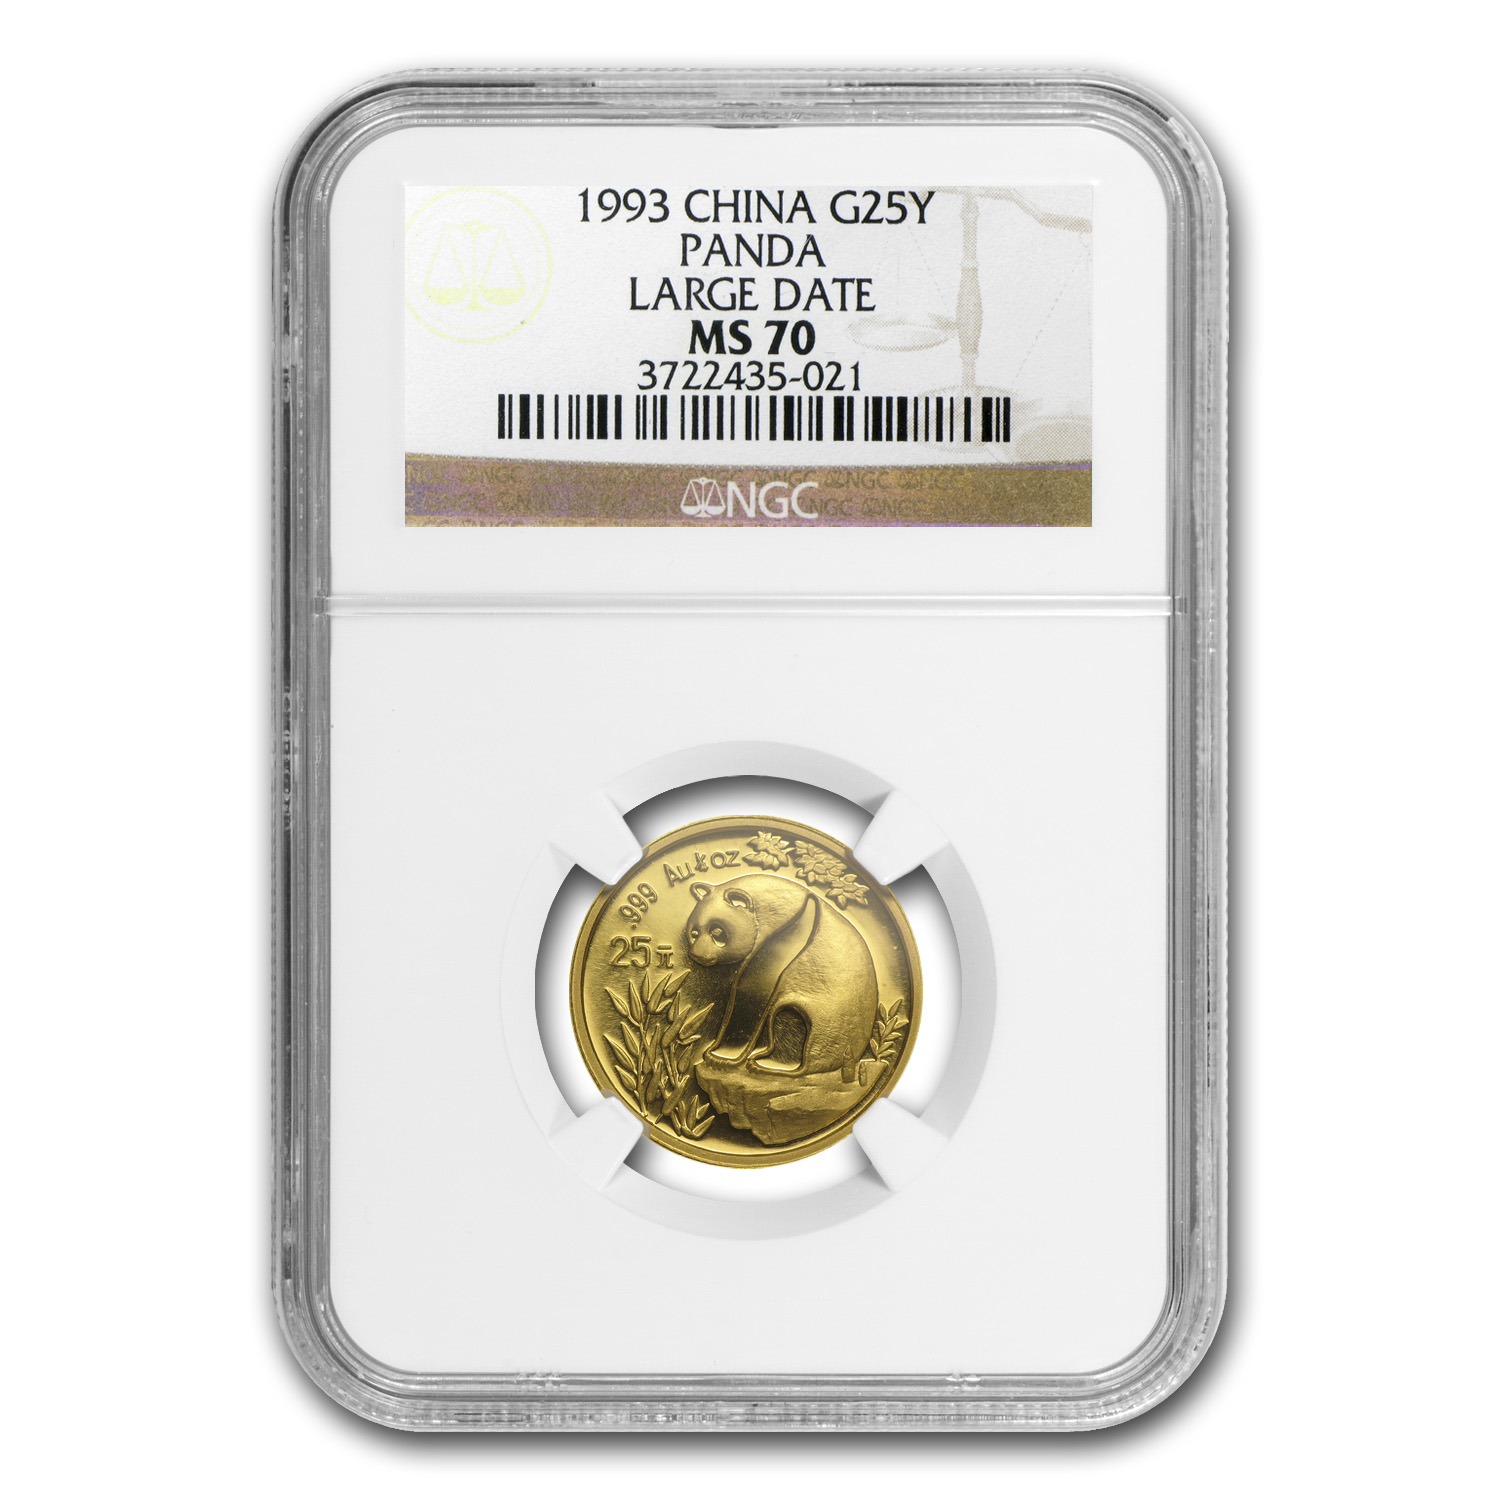 1993 China 1/4 oz Gold Panda Large Date MS-70 NGC